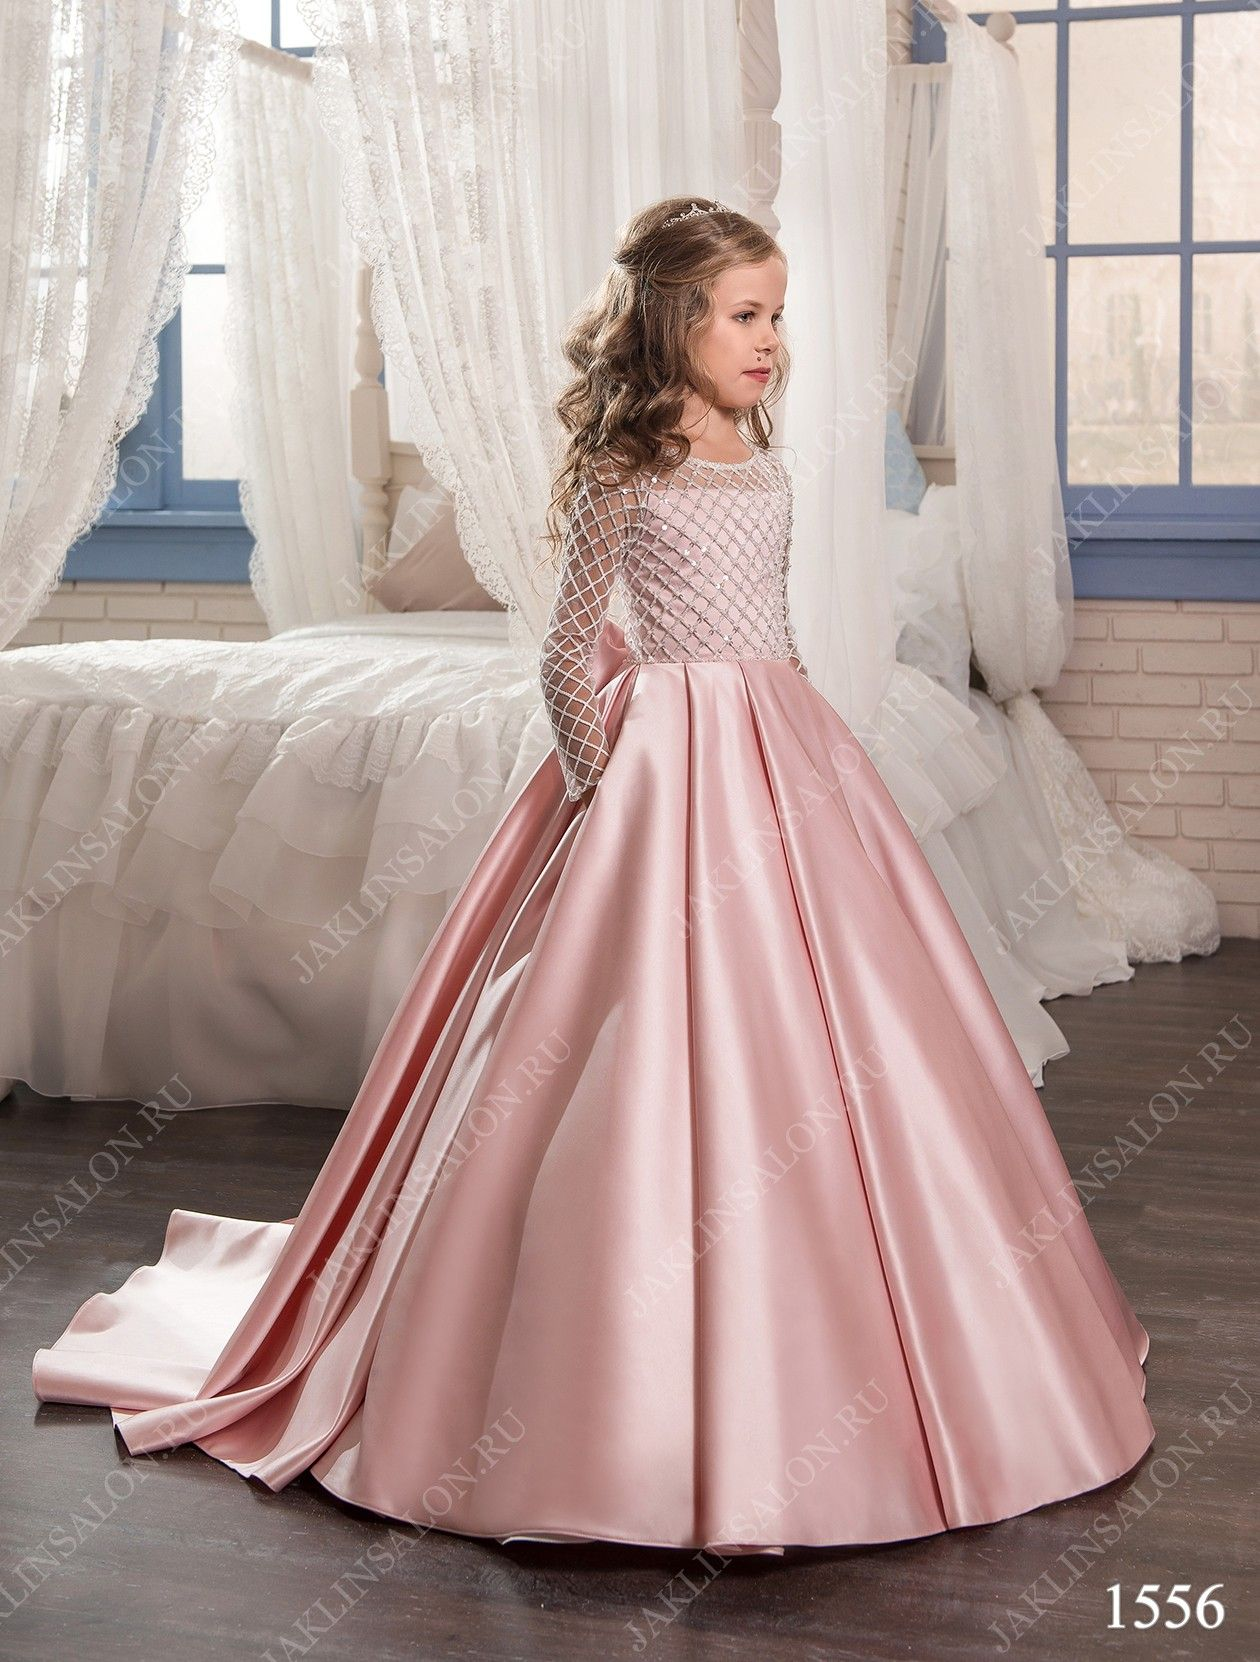 Baby dress model 1556 | Damitas de honor | Pinterest | Vestidos de ...